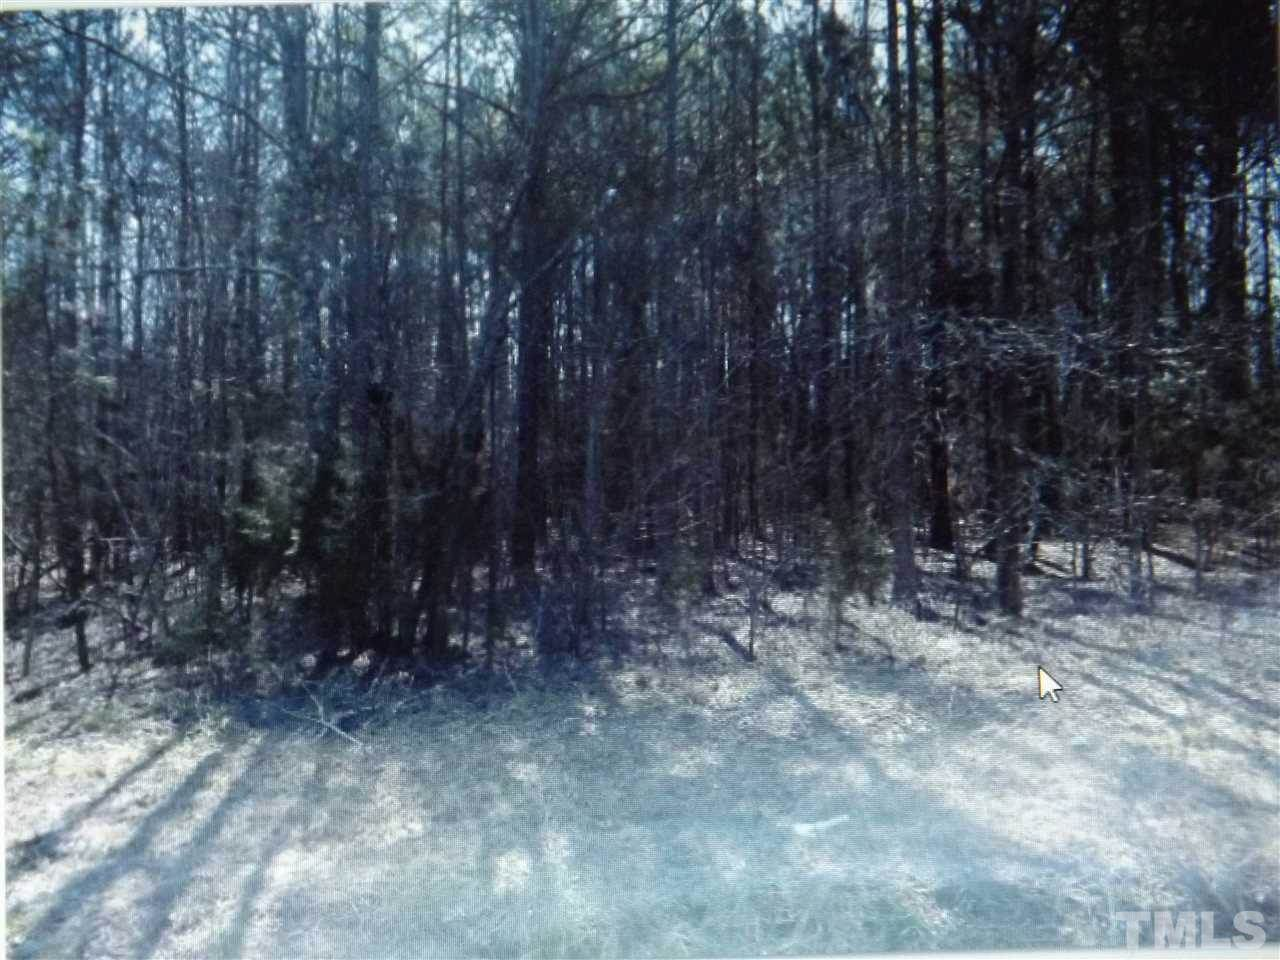 Image of Acreage for Sale near Bennett, North Carolina, in Chatham county: 1.84 acres